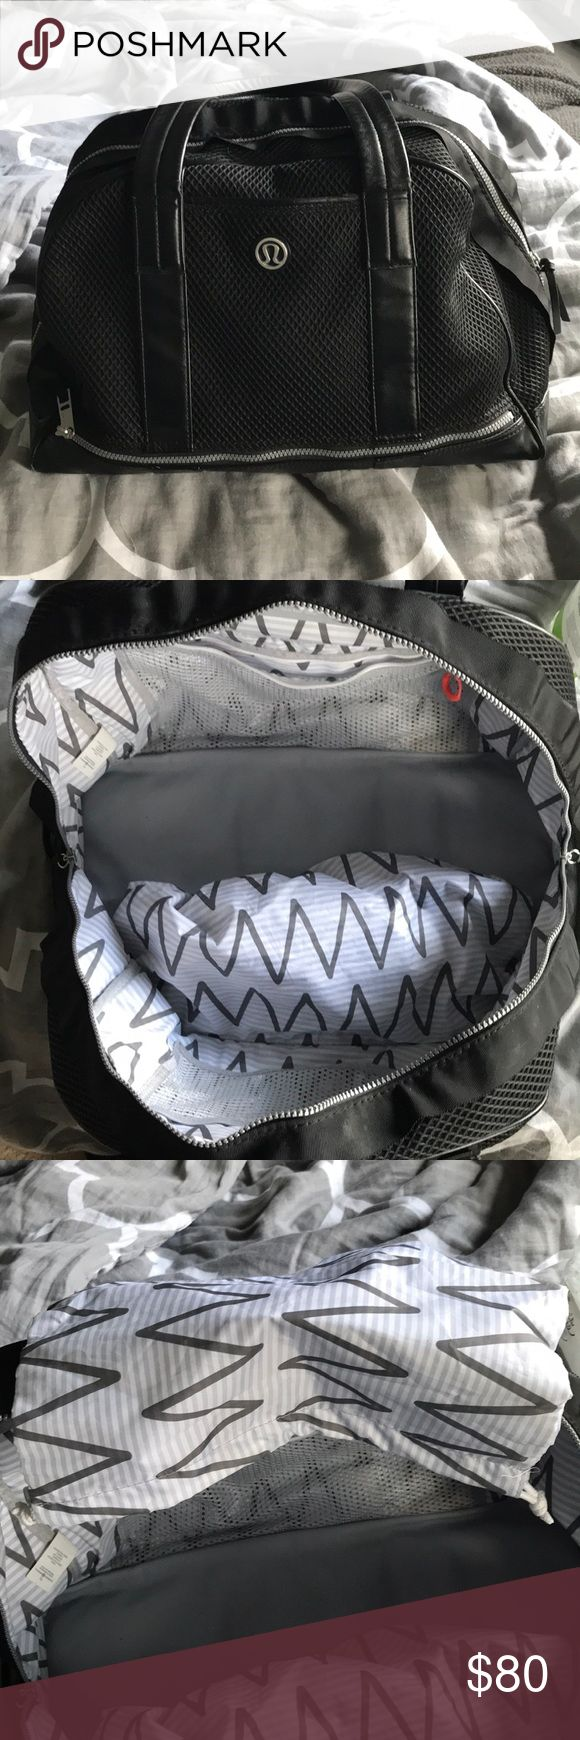 LULULEMON bag In used condition with no noticeable flaws besides maybe a mark or 2 on the fabric you can hardly see. Still have the dirty laundry or shoe bag and yoga strap both never used. lululemon athletica Bags